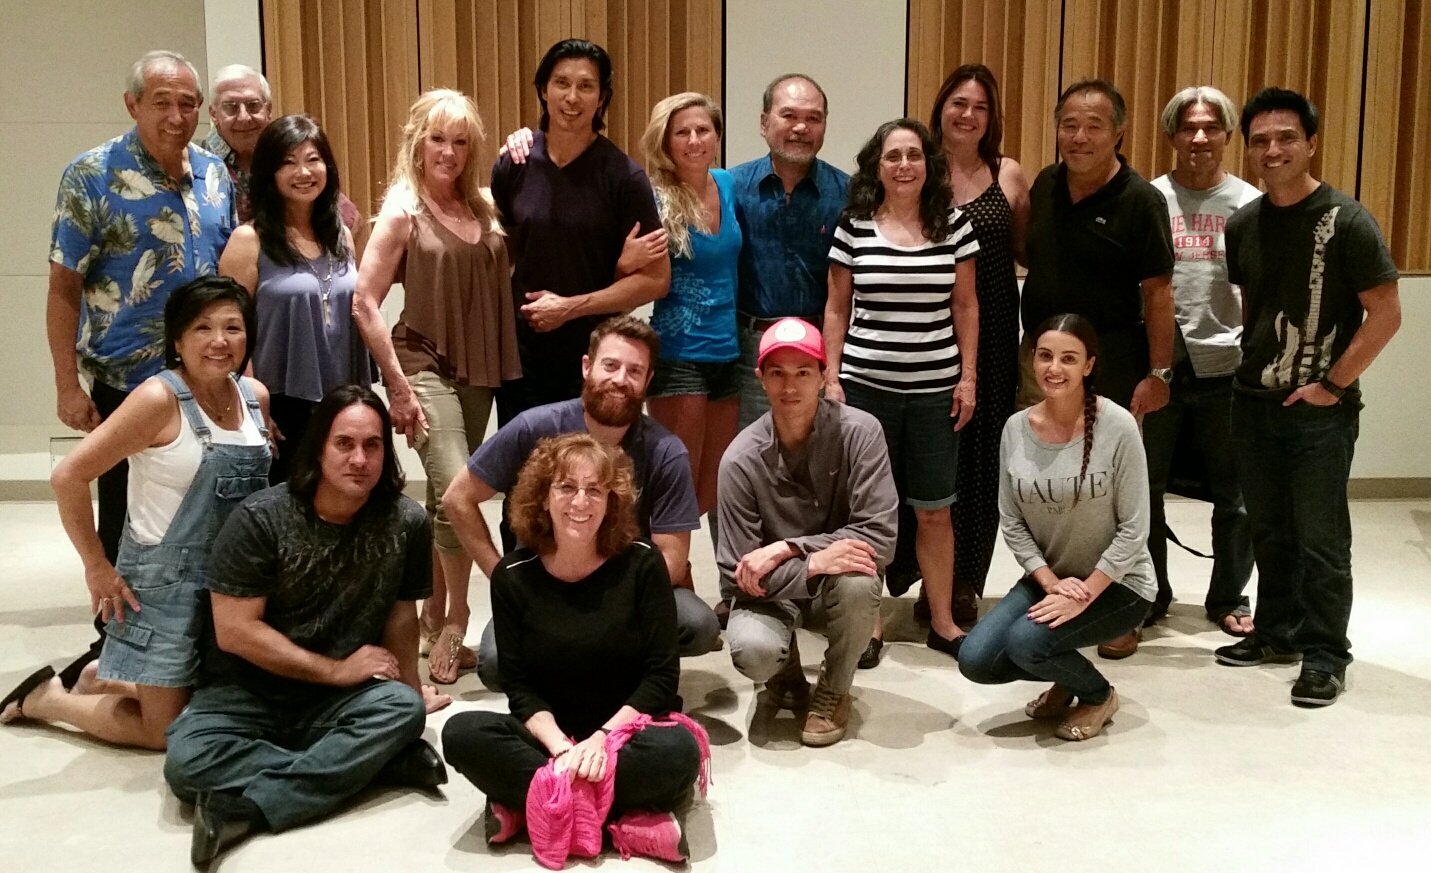 Members at the conservatory workshop with instructor Keo Woolford.